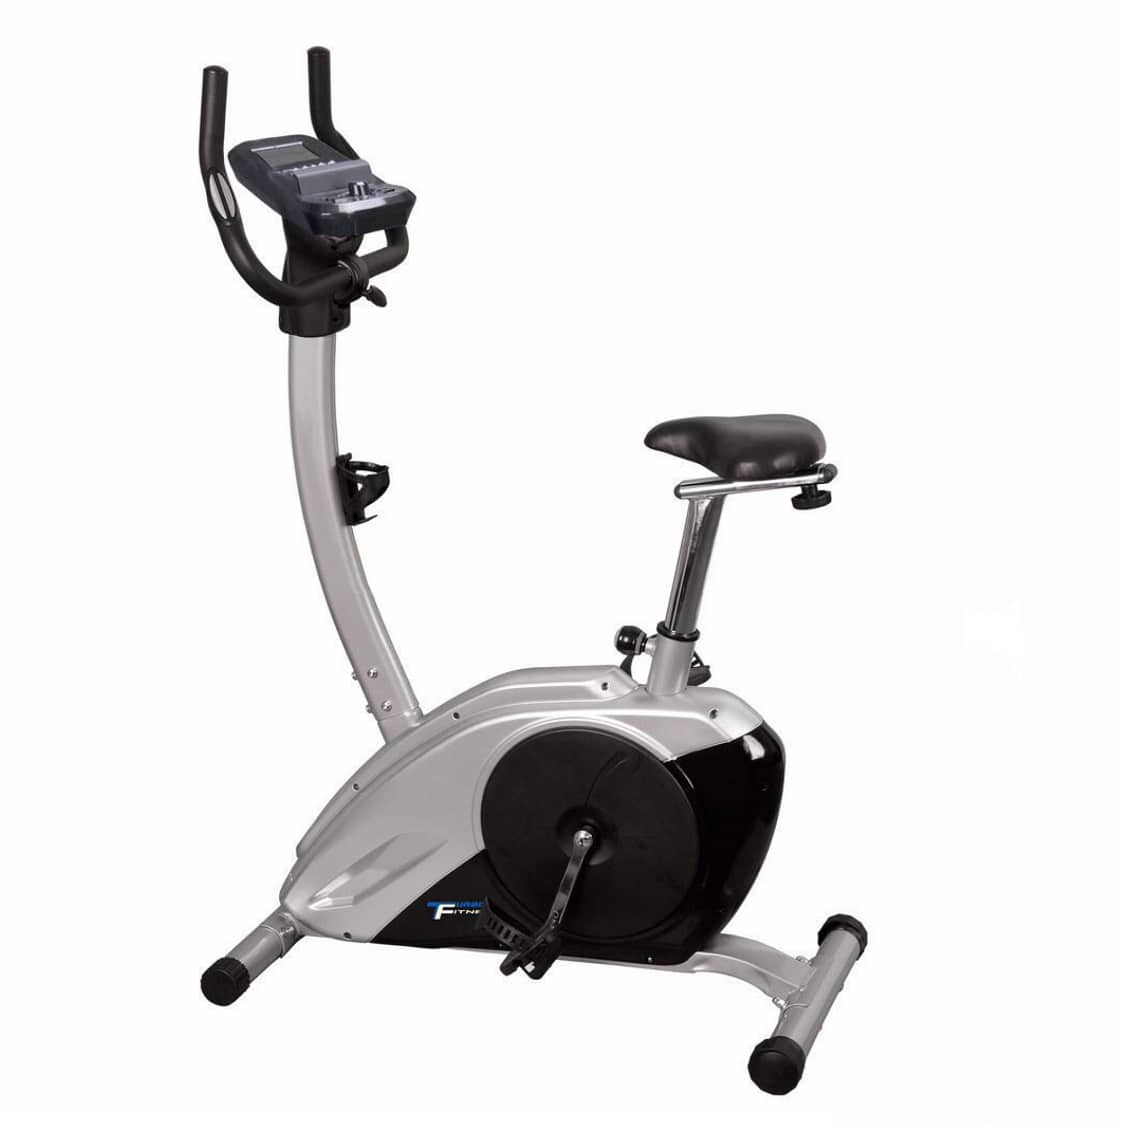 Turbo Fitness TF 410 stationary bike